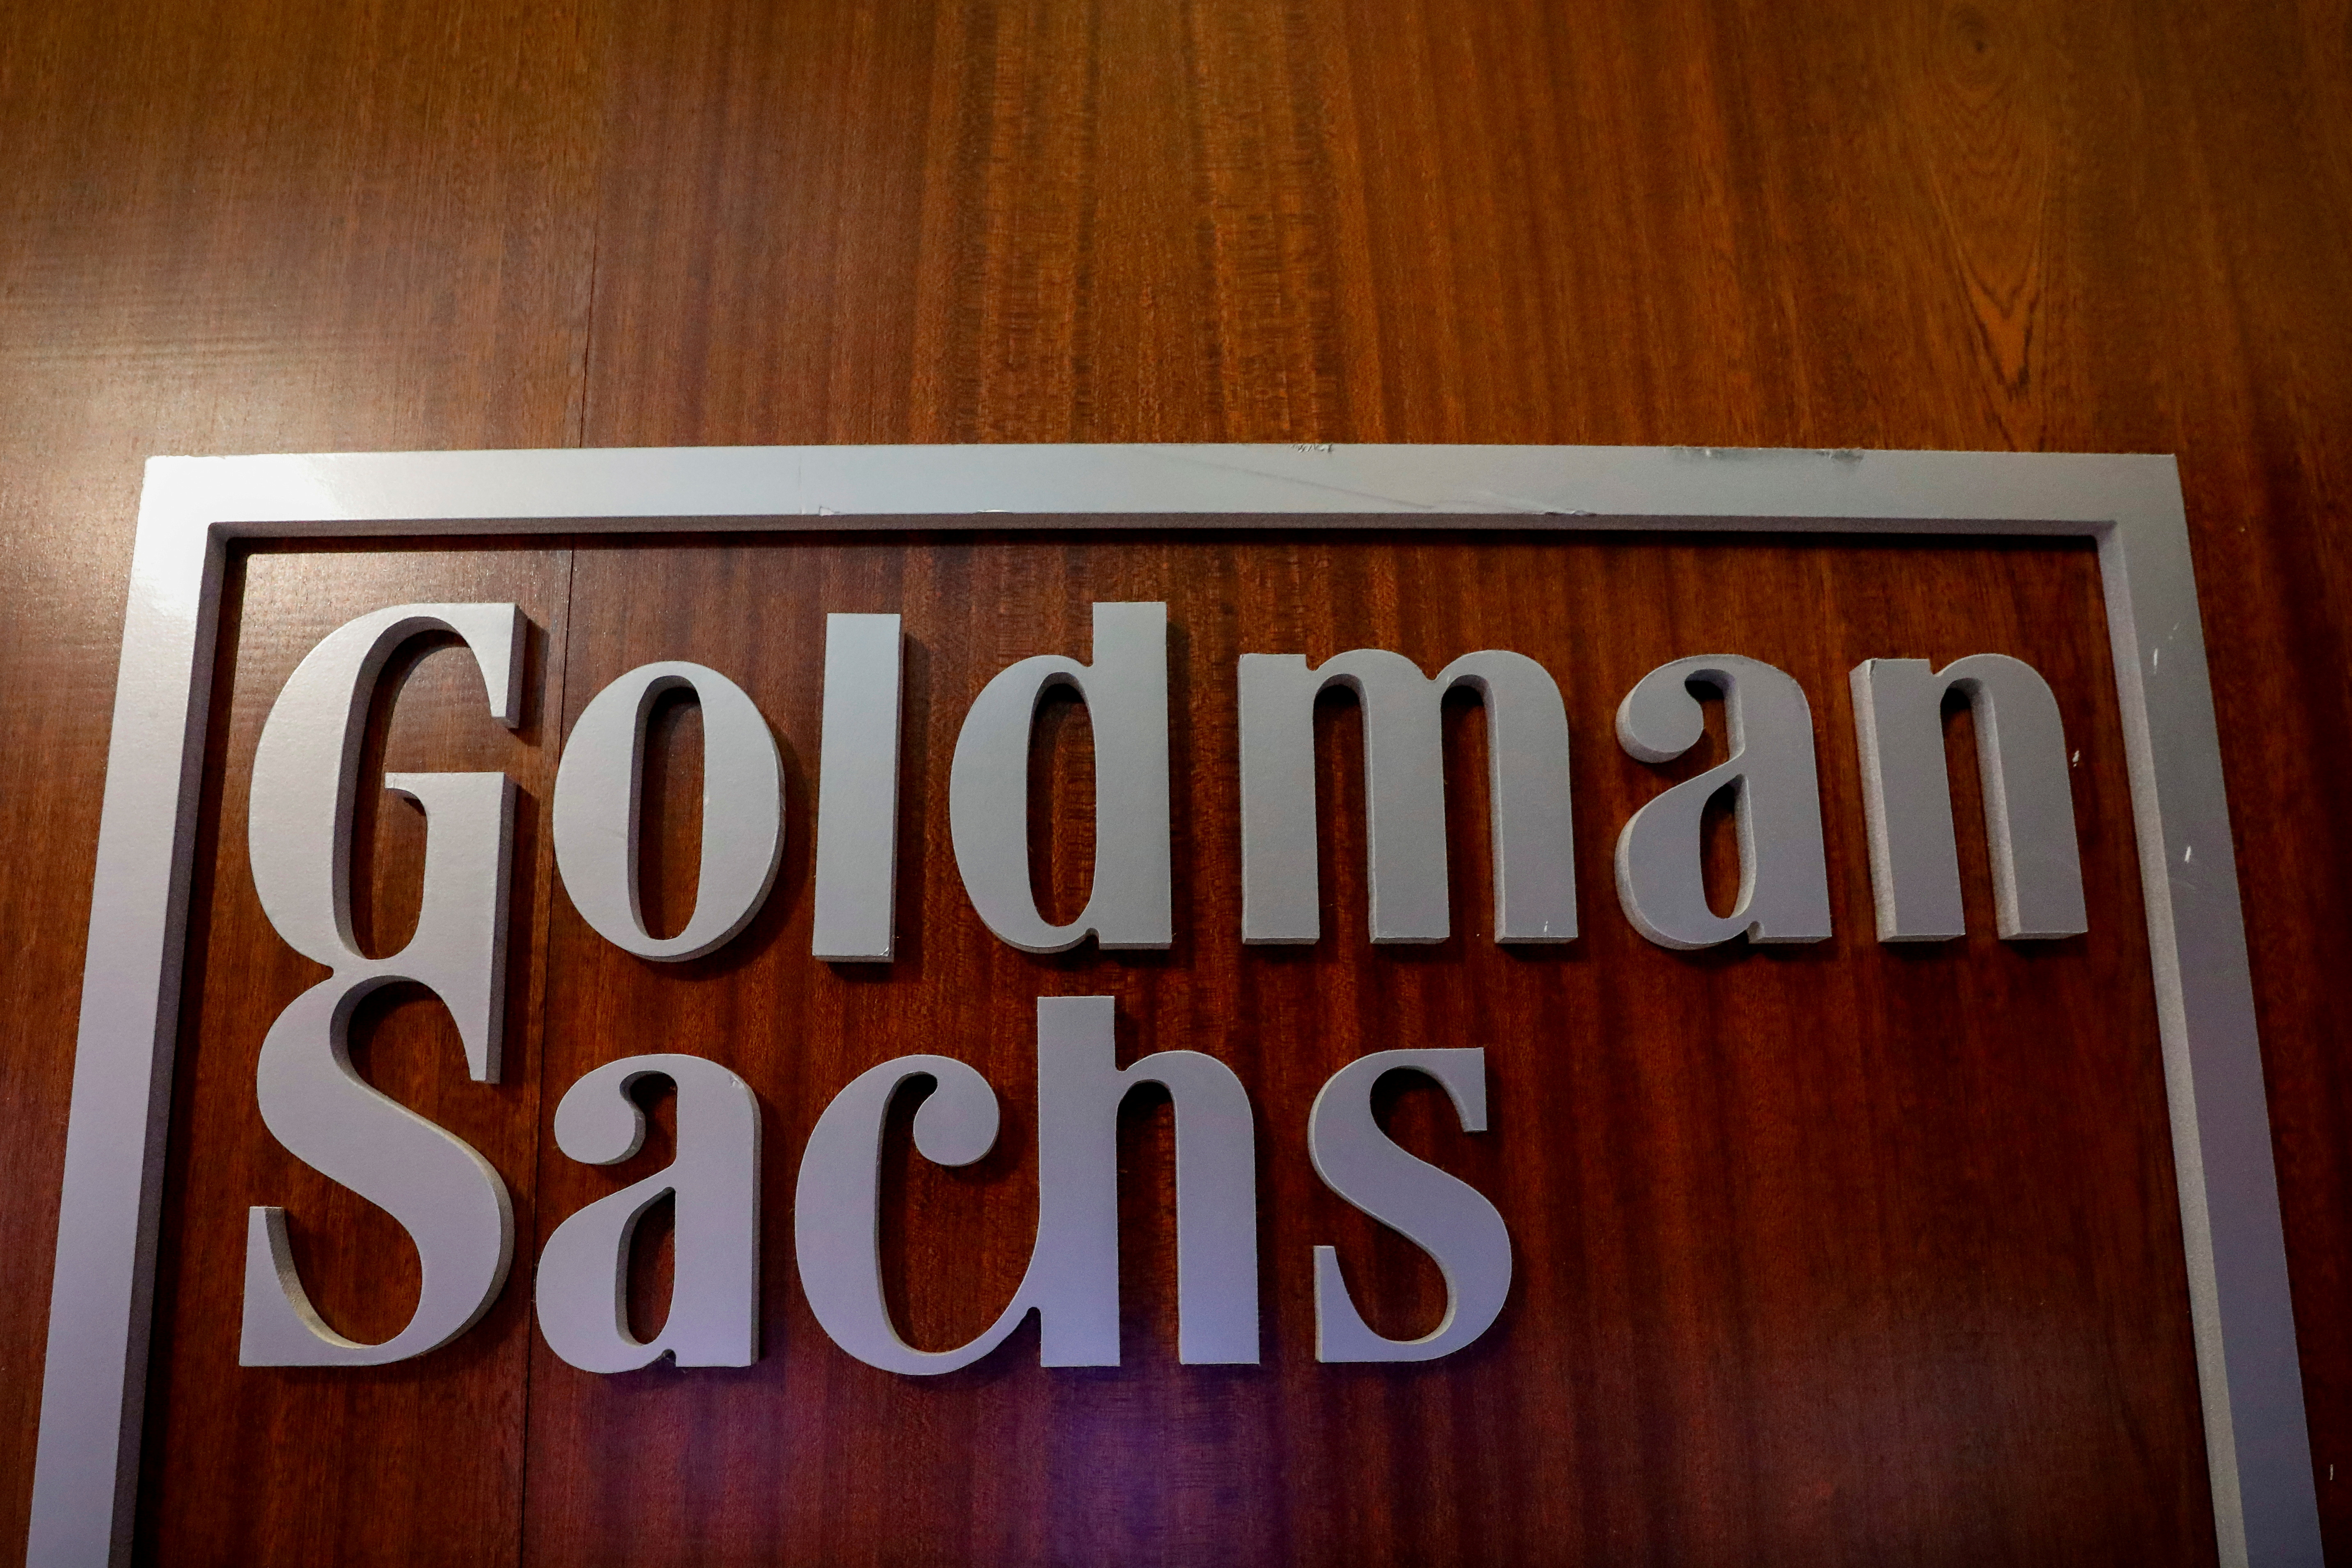 The Goldman Sachs company logo is seen in the company's space on the floor of the New York Stock Exchange, (NYSE) in New York, U.S., April 17, 2018. REUTERS/Brendan McDermid/File Photo